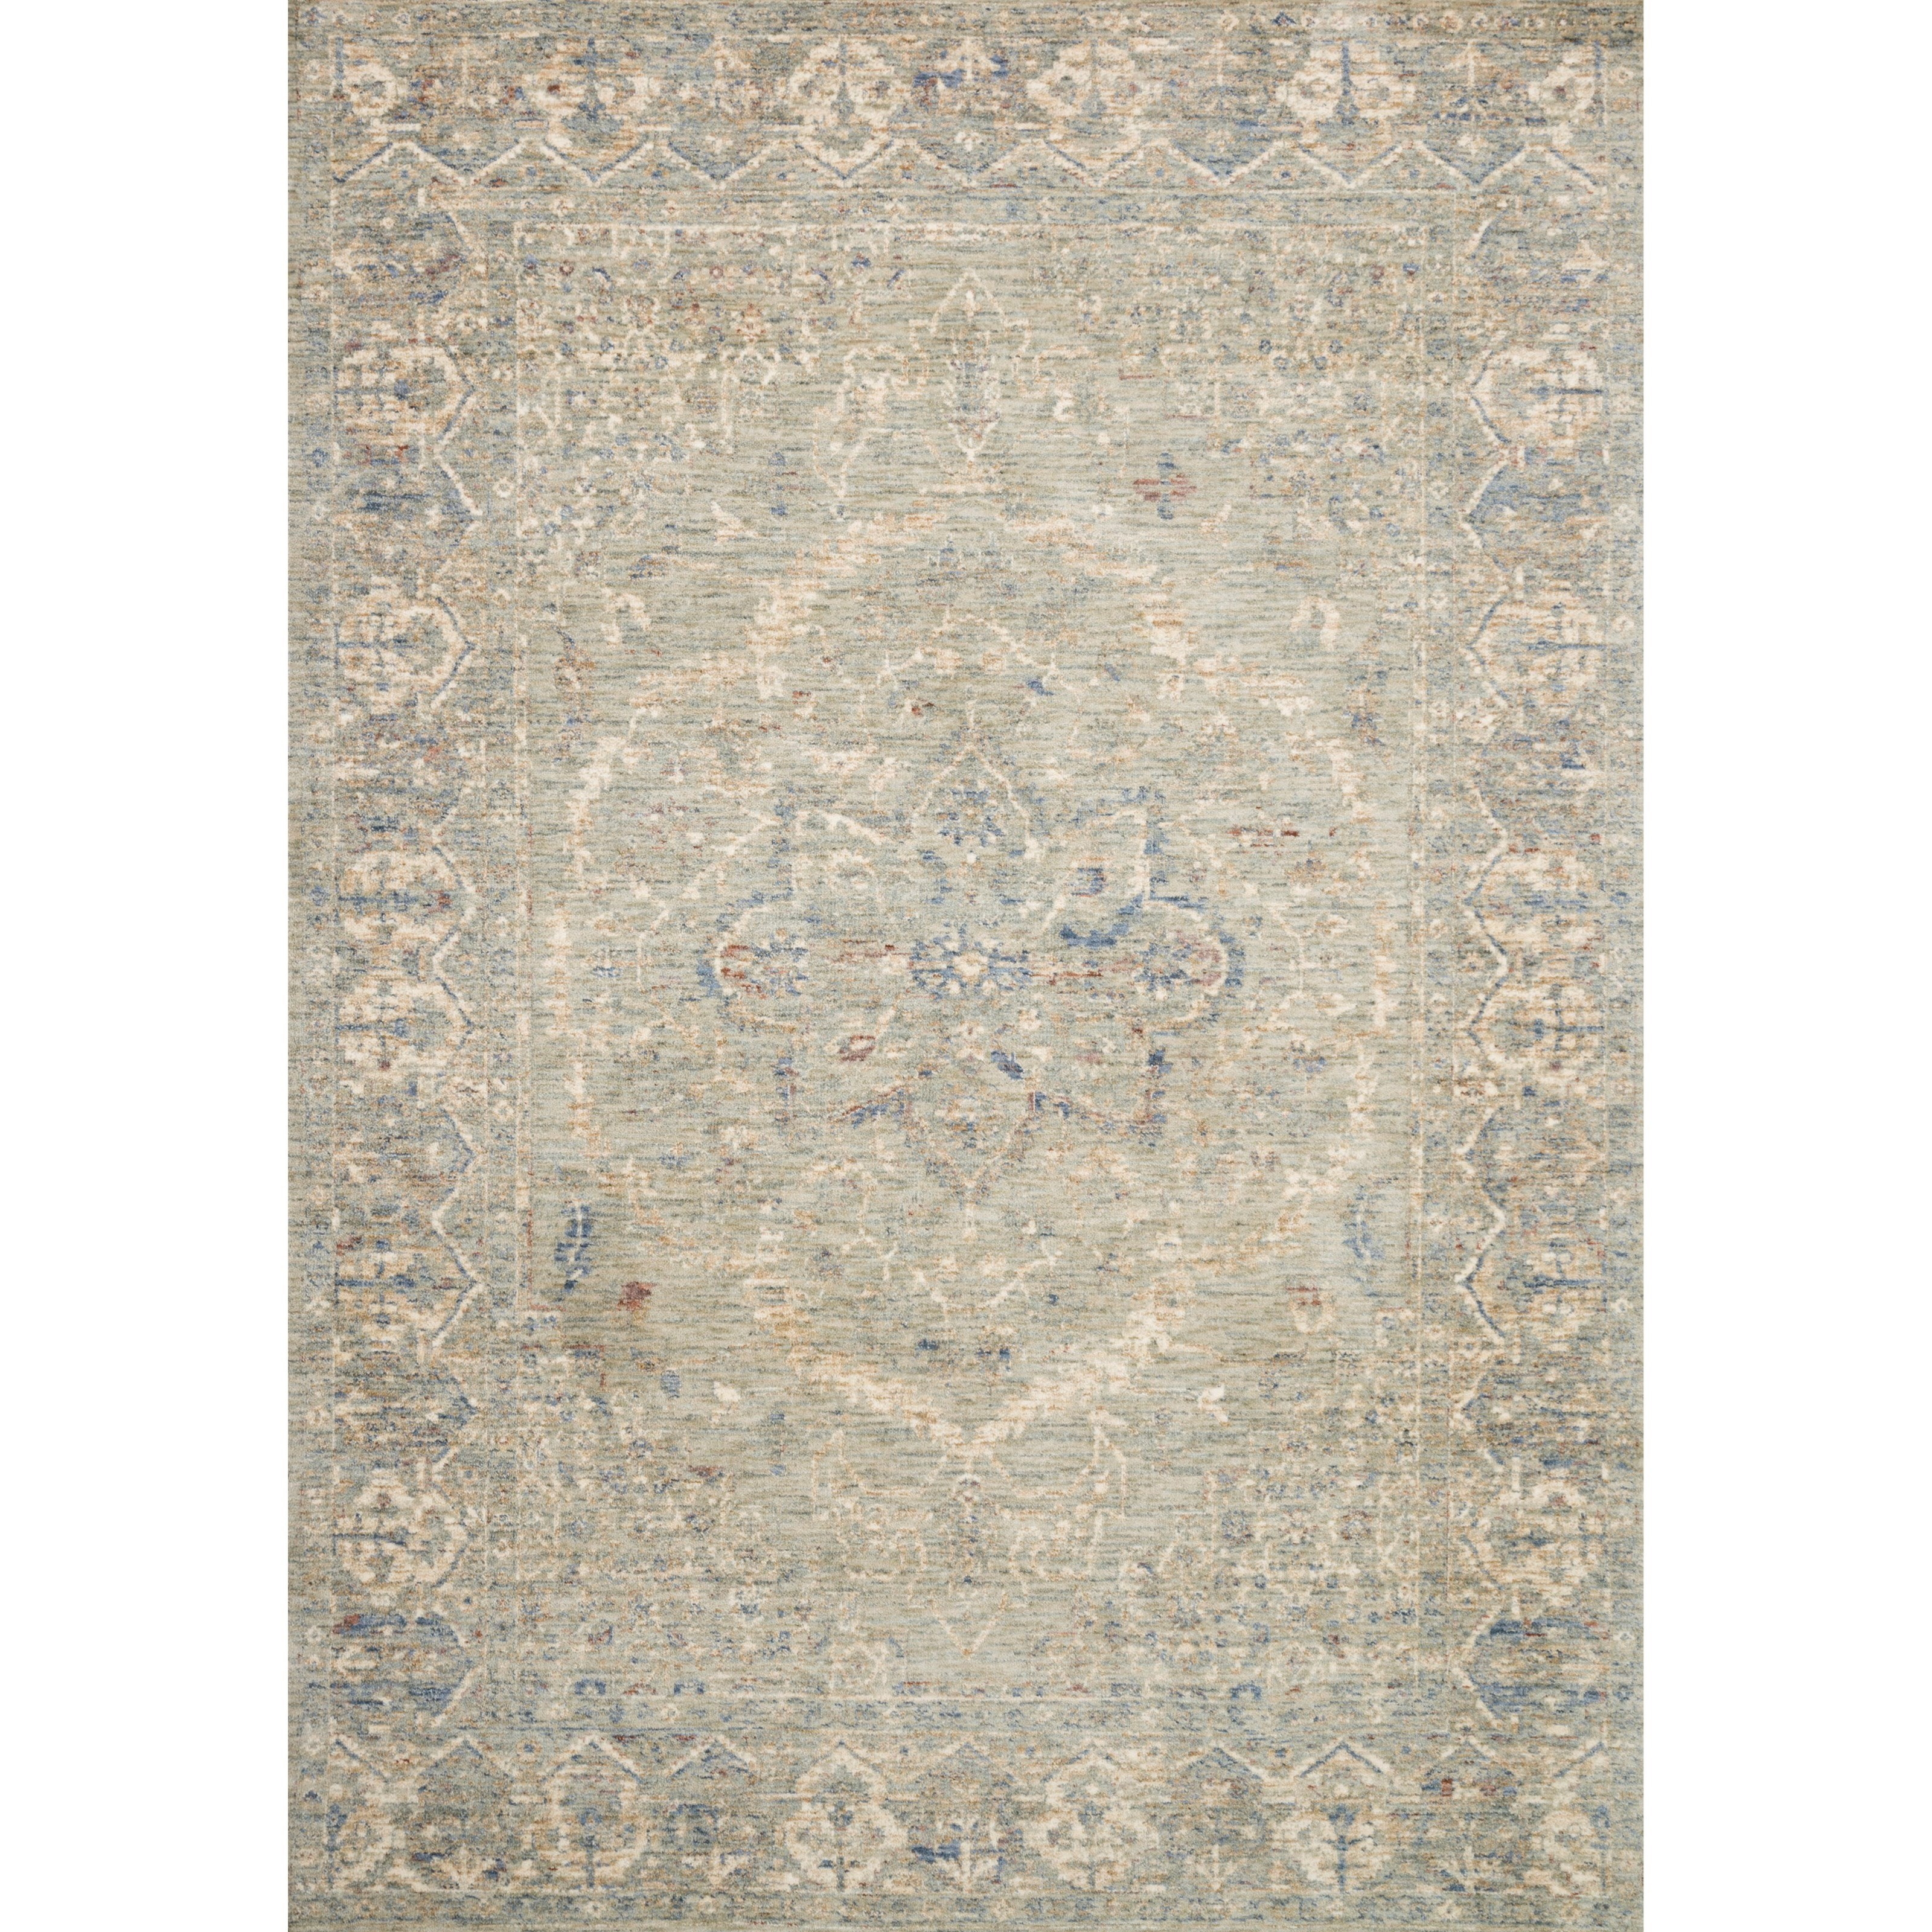 """Revere 2' x 3'2"""" Mist Rug by Loloi Rugs at Virginia Furniture Market"""